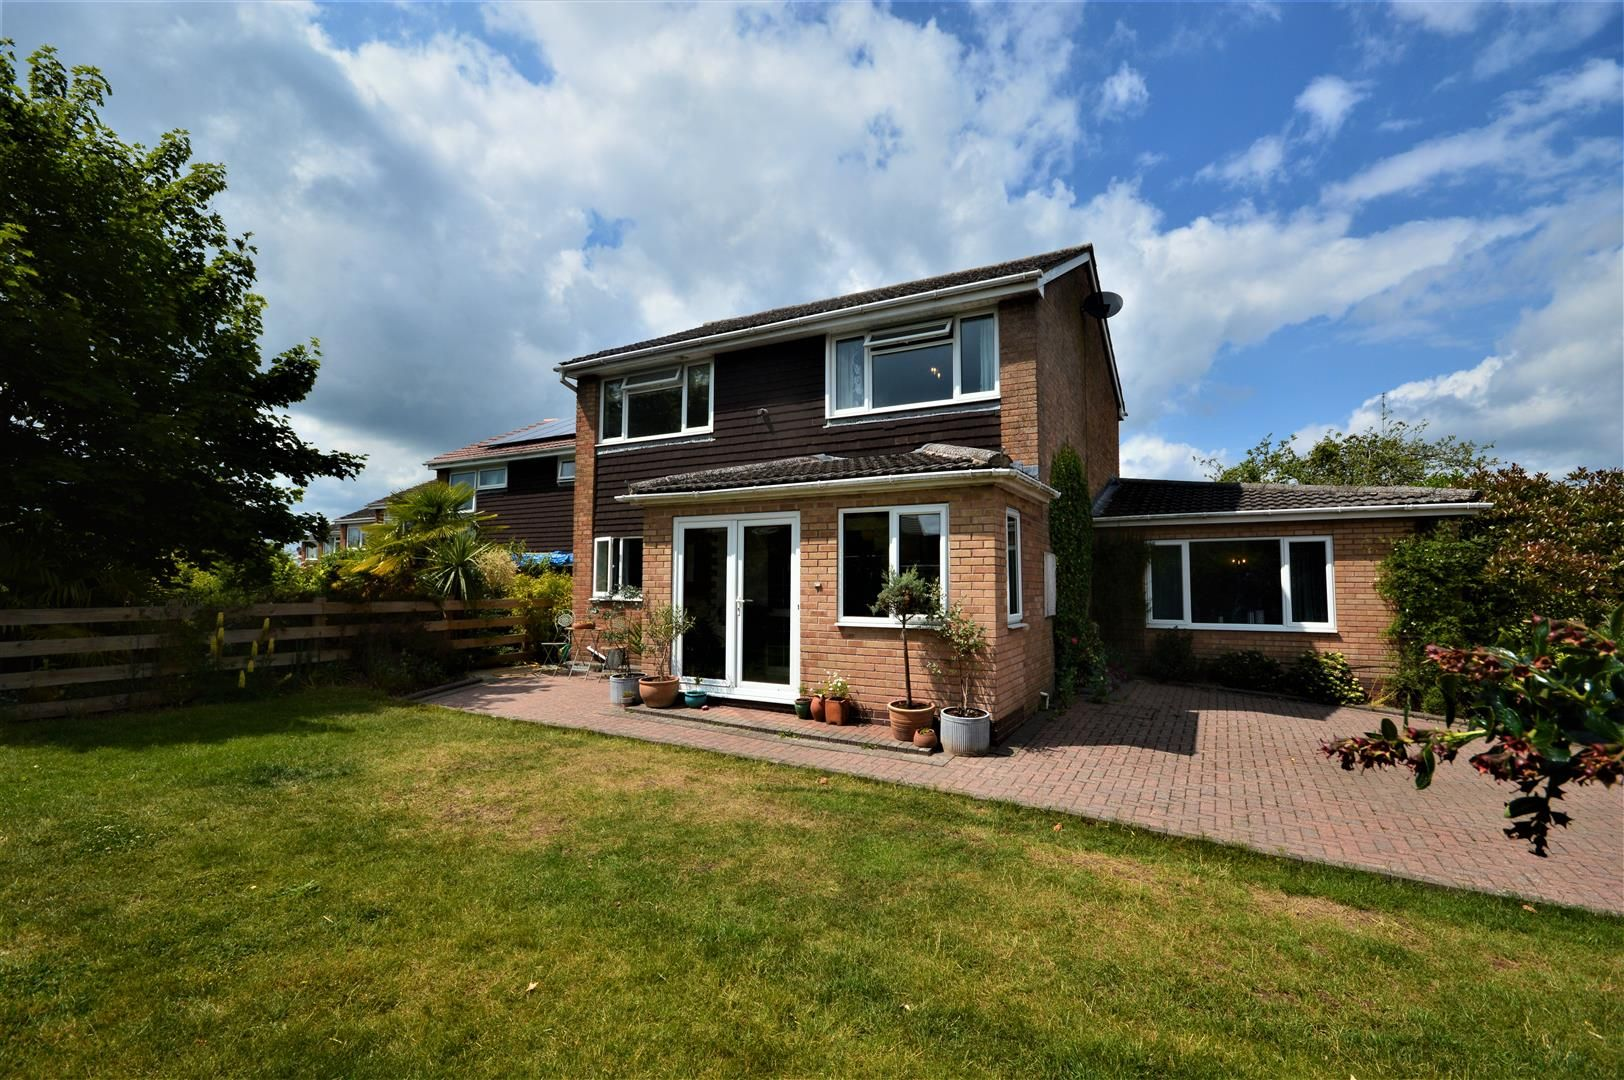 4 bed detached for sale in Bromyard, HR7